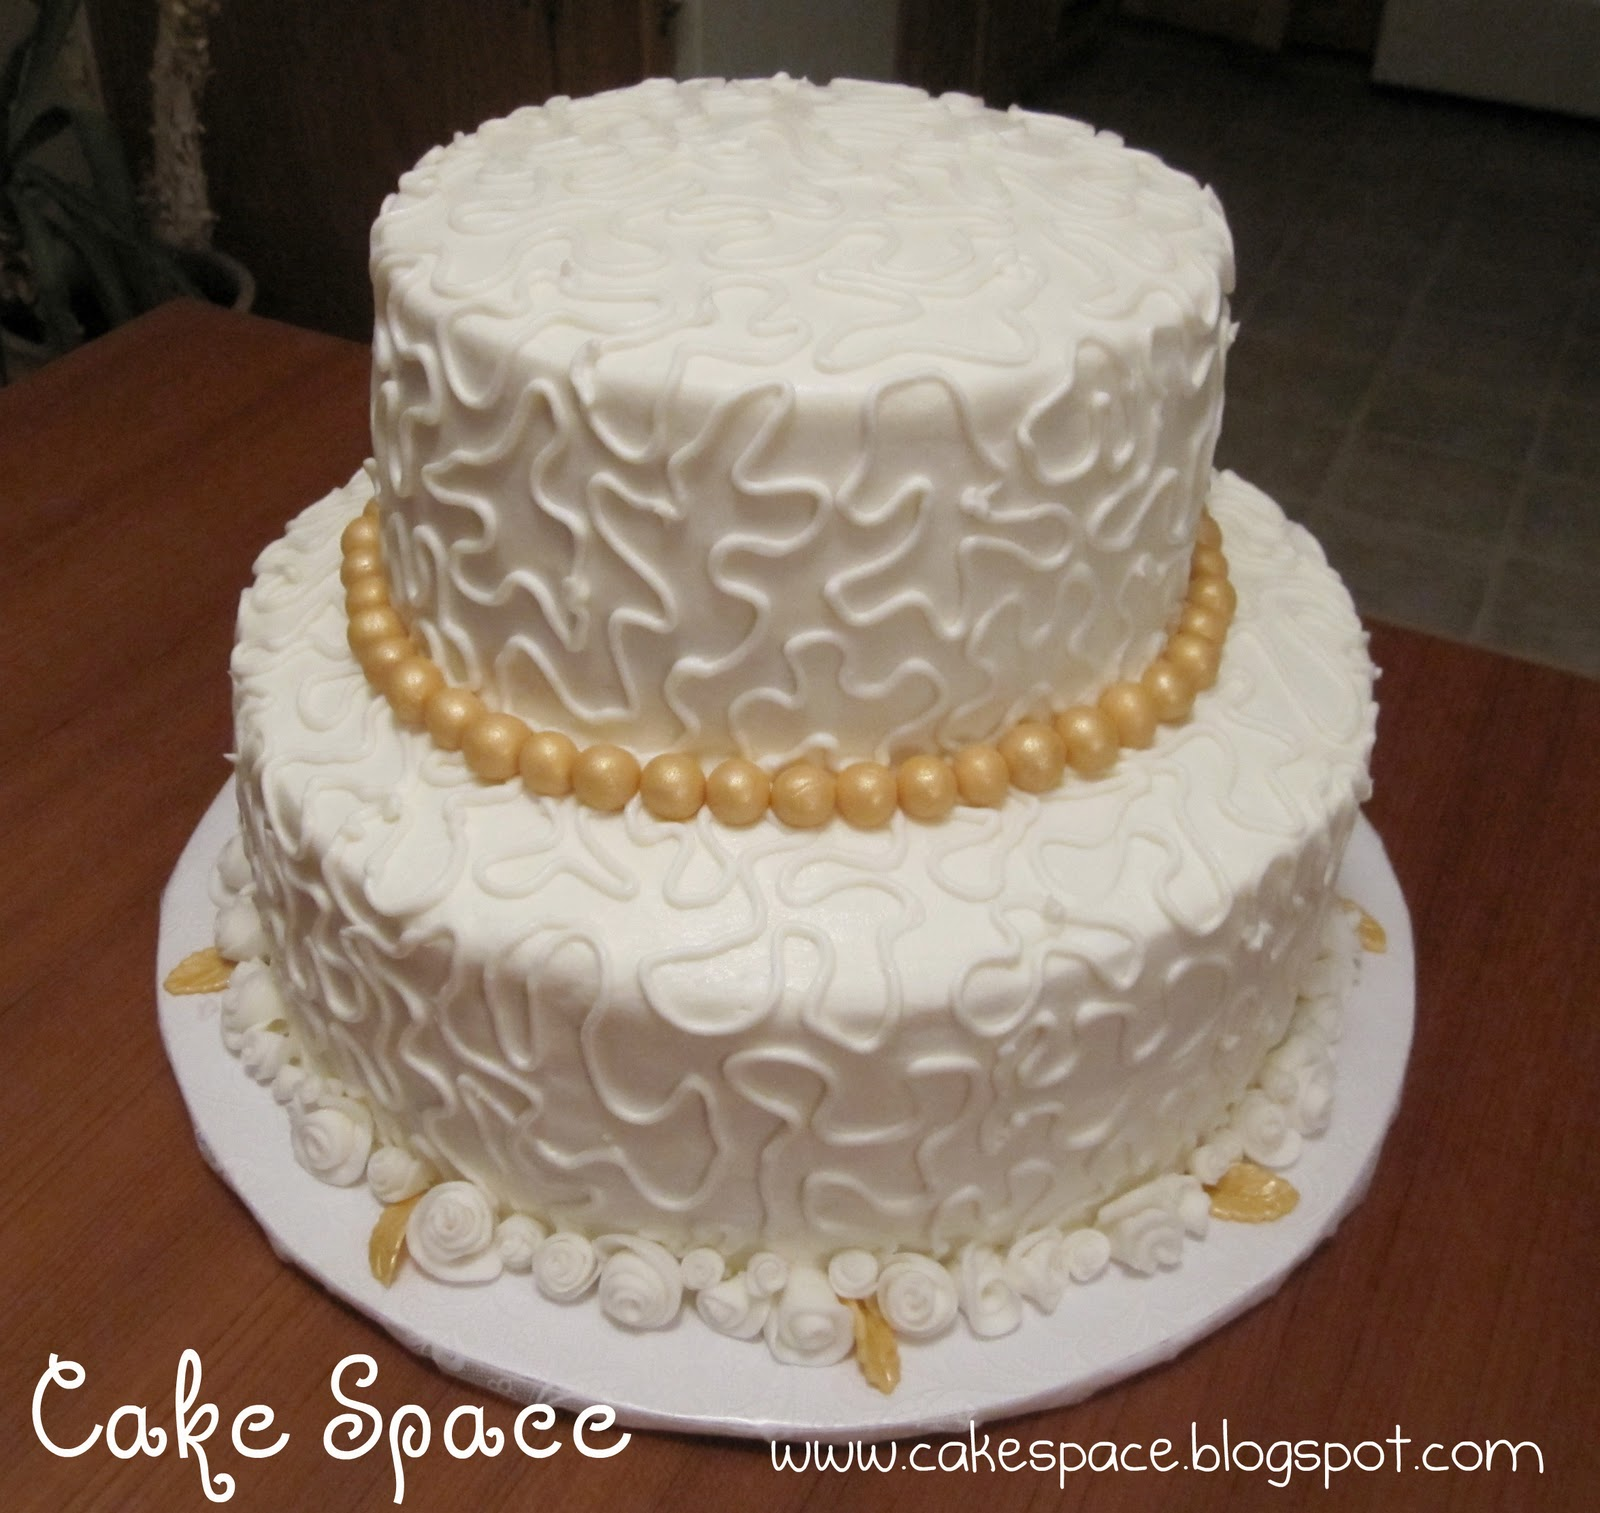 Download Images Of Anniversary Cake : Wendy s Cake Space: 50th Anniversary Cake